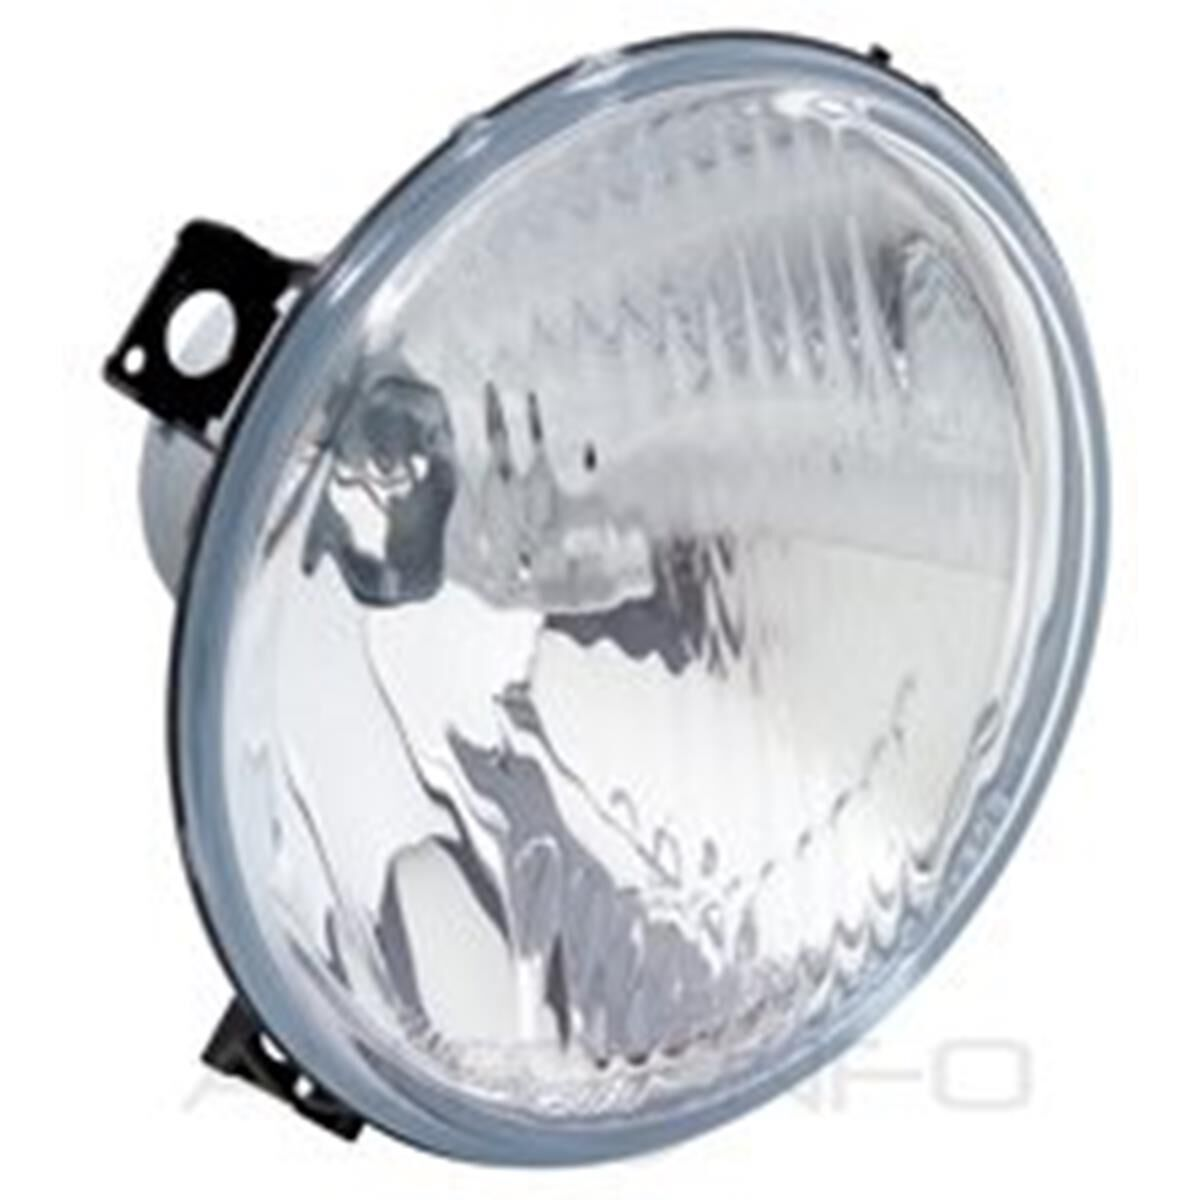 HELLA 1K3134855-011 Headlight Insert Headlight